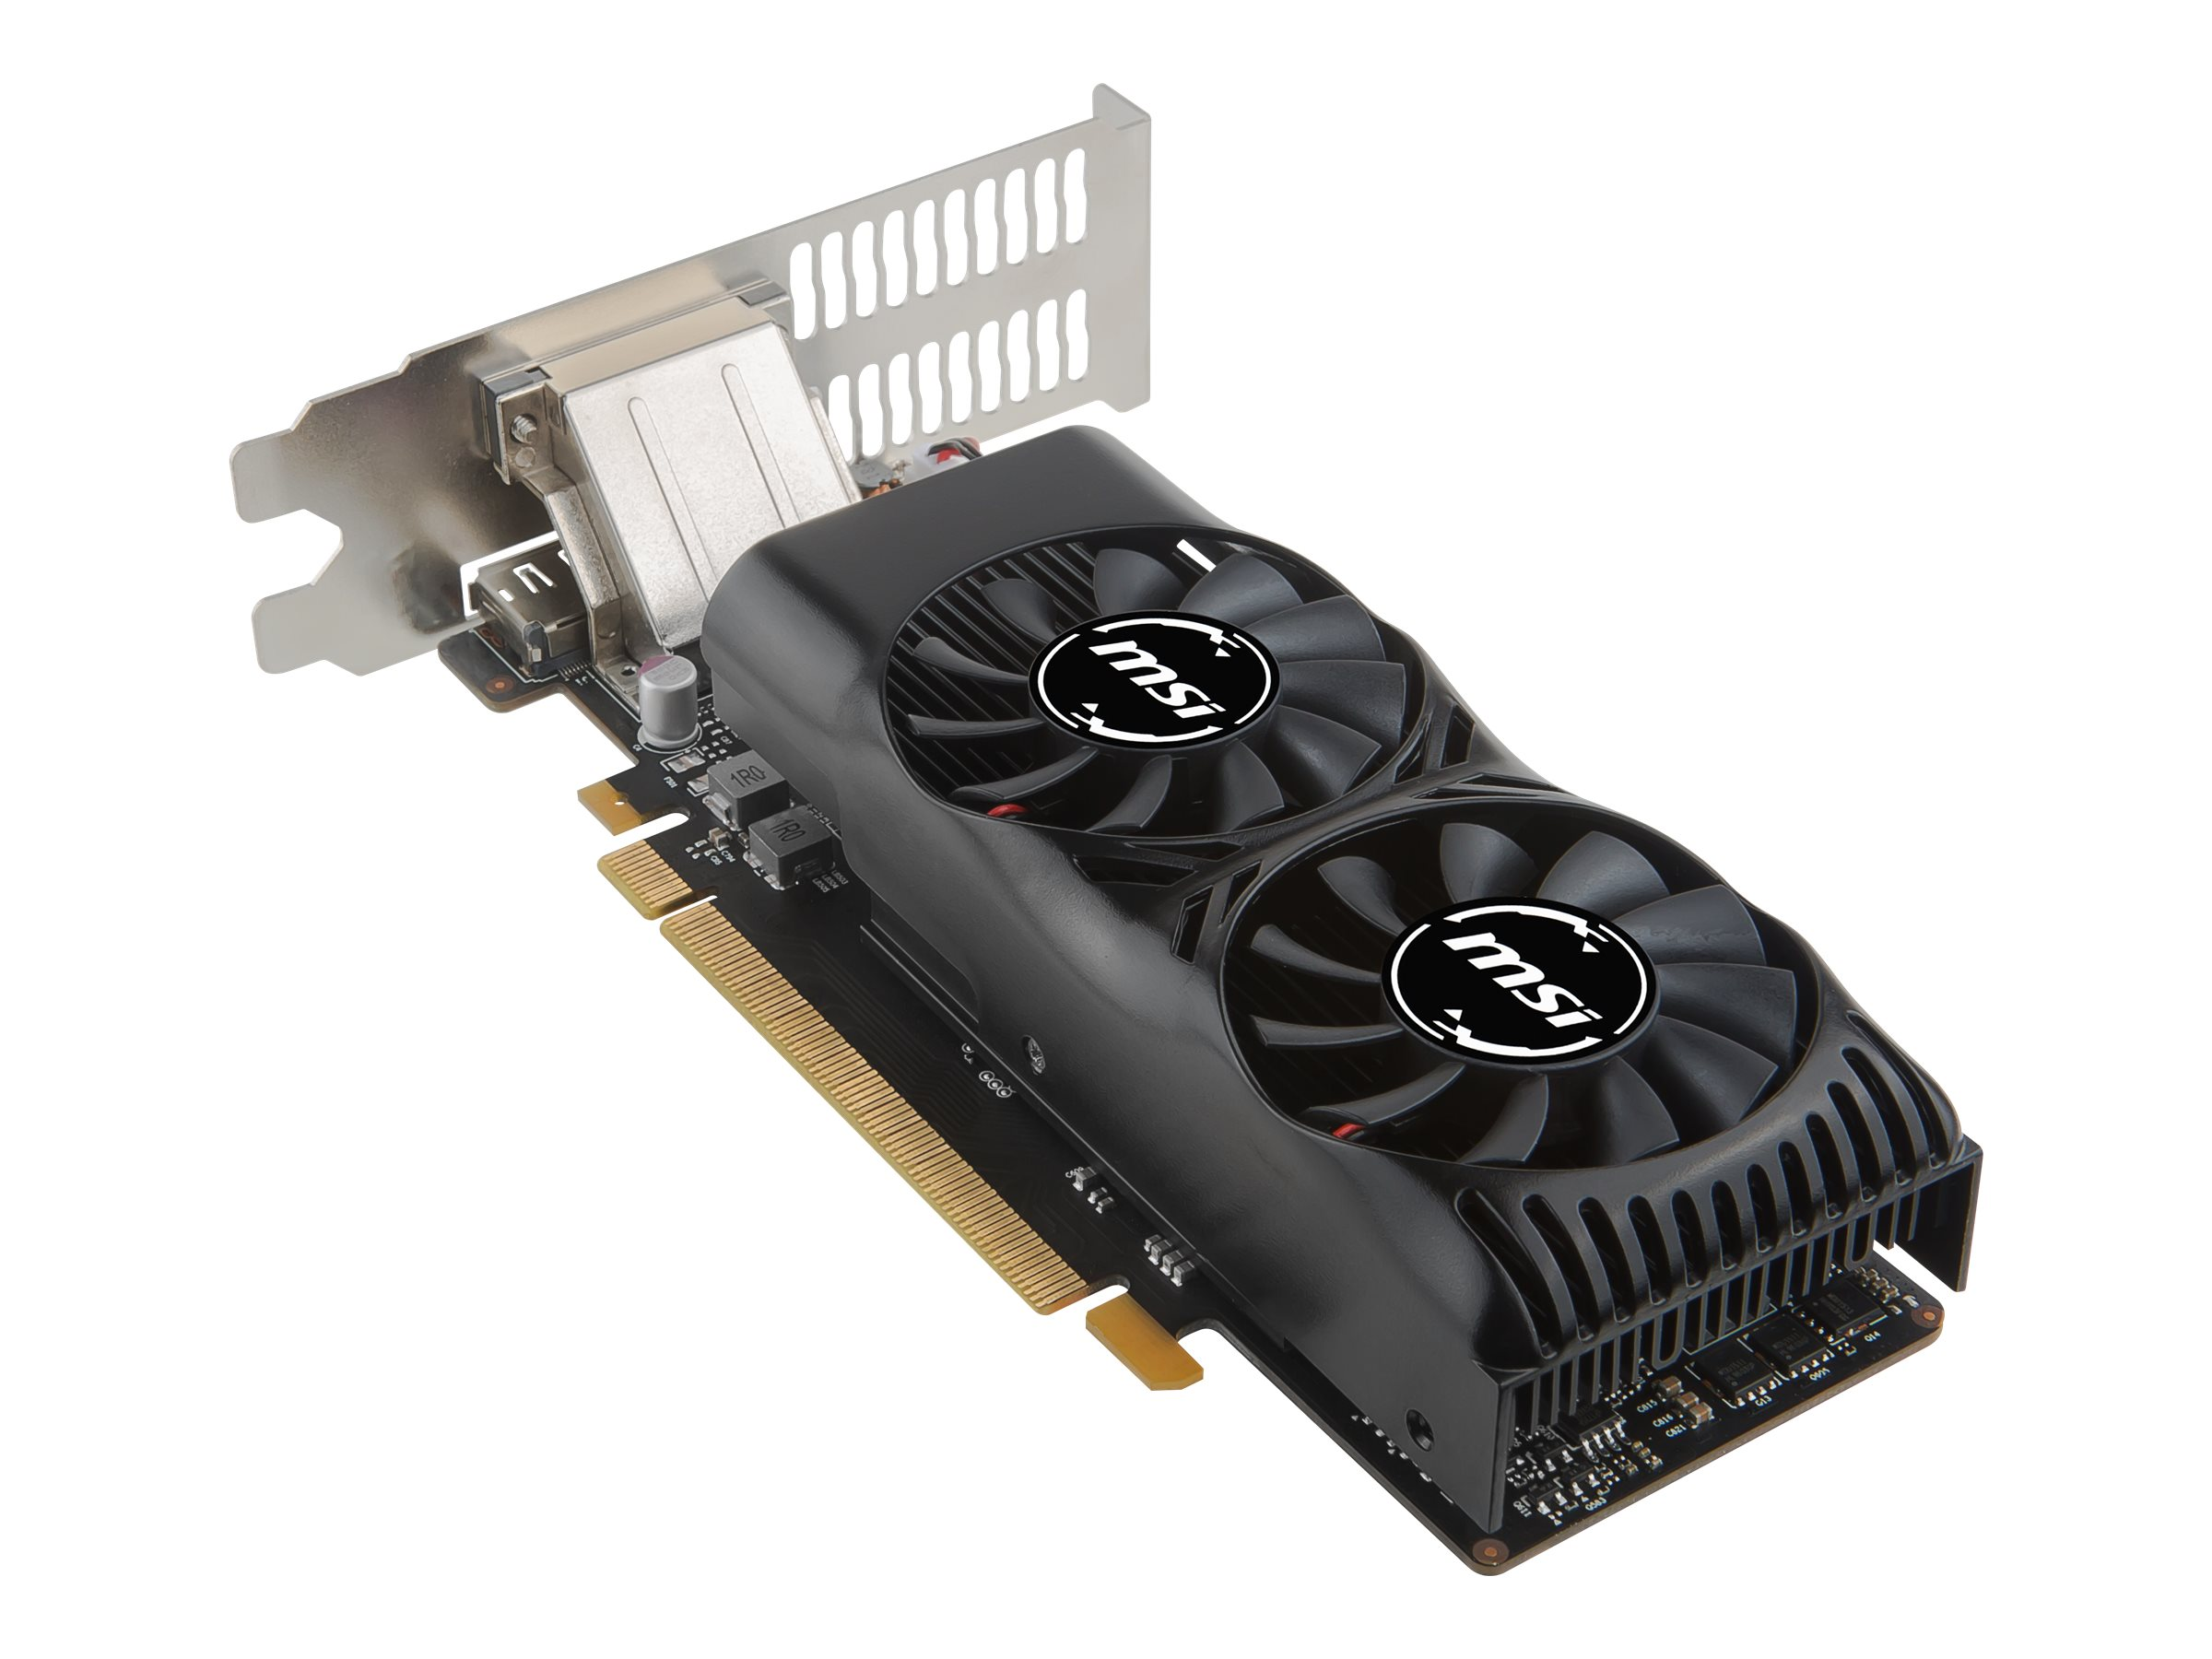 MSI GTX 1050 2GT LP - Grafikkarten - NVIDIA GeForce GTX 1050 - 2 GB GDDR5 - PCIe 3.0 x16 Low-Profile - DVI, HDMI, DisplayPort